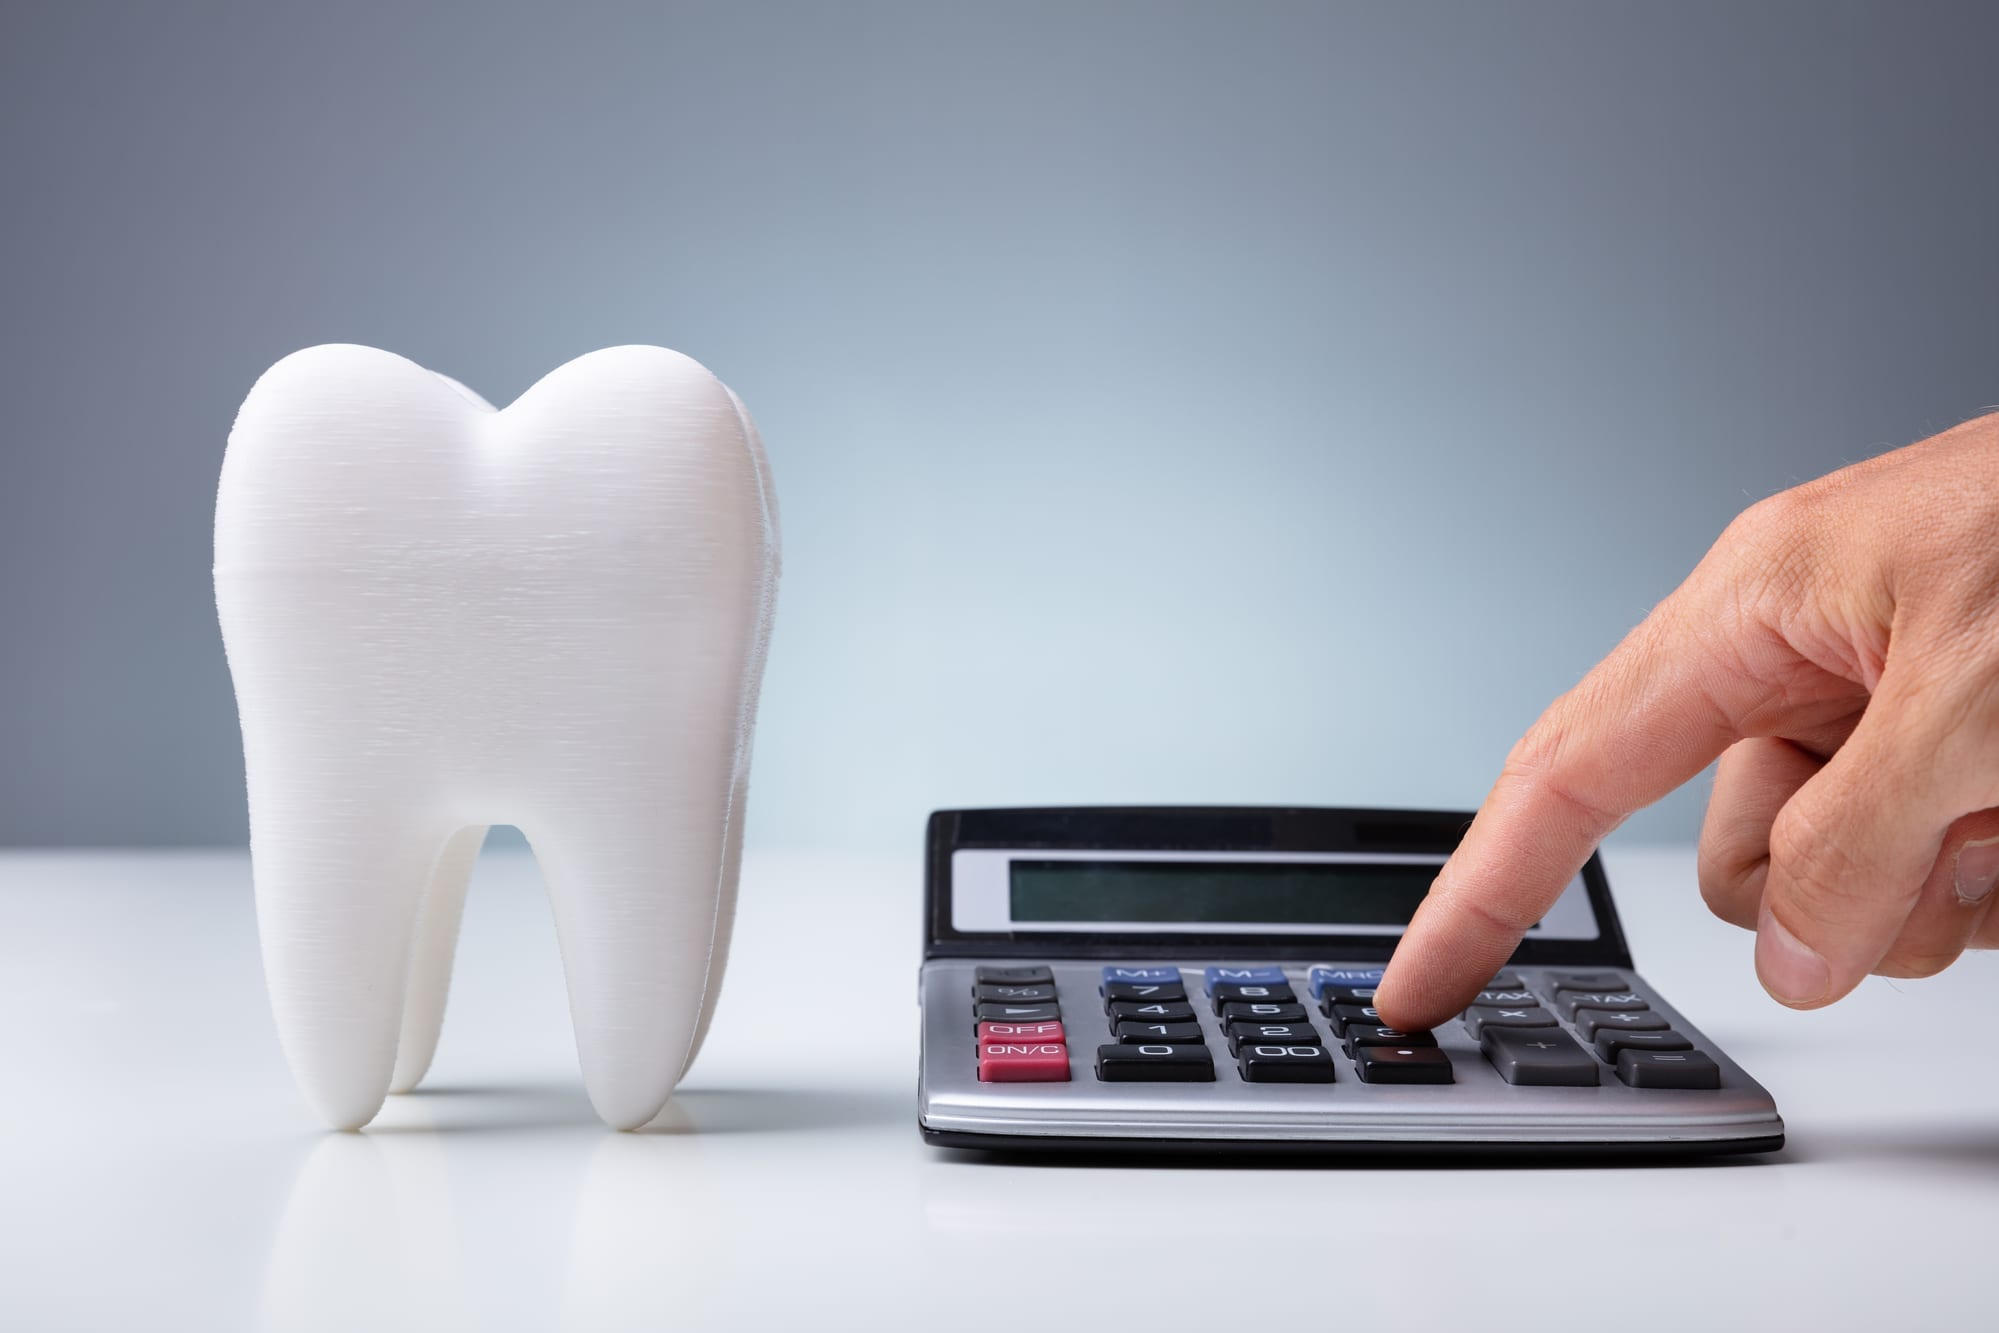 Calculating Dental Benefits Course Will Help Dental Administrators Understand Insurance Calculations Better